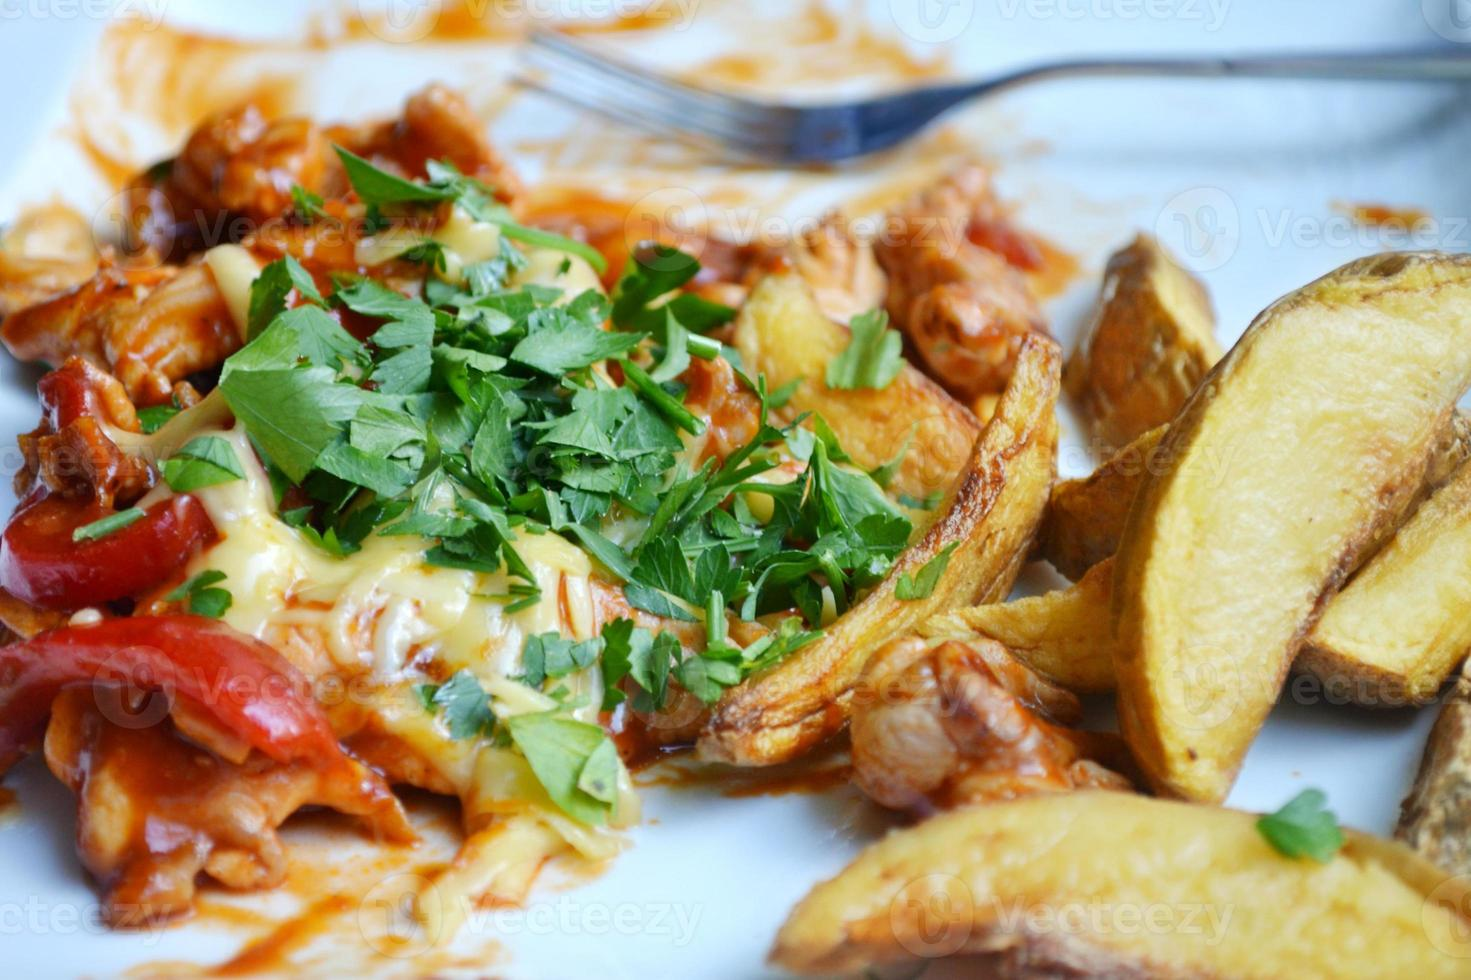 Big plate with fried potatoes, meat and cheese and sauce photo